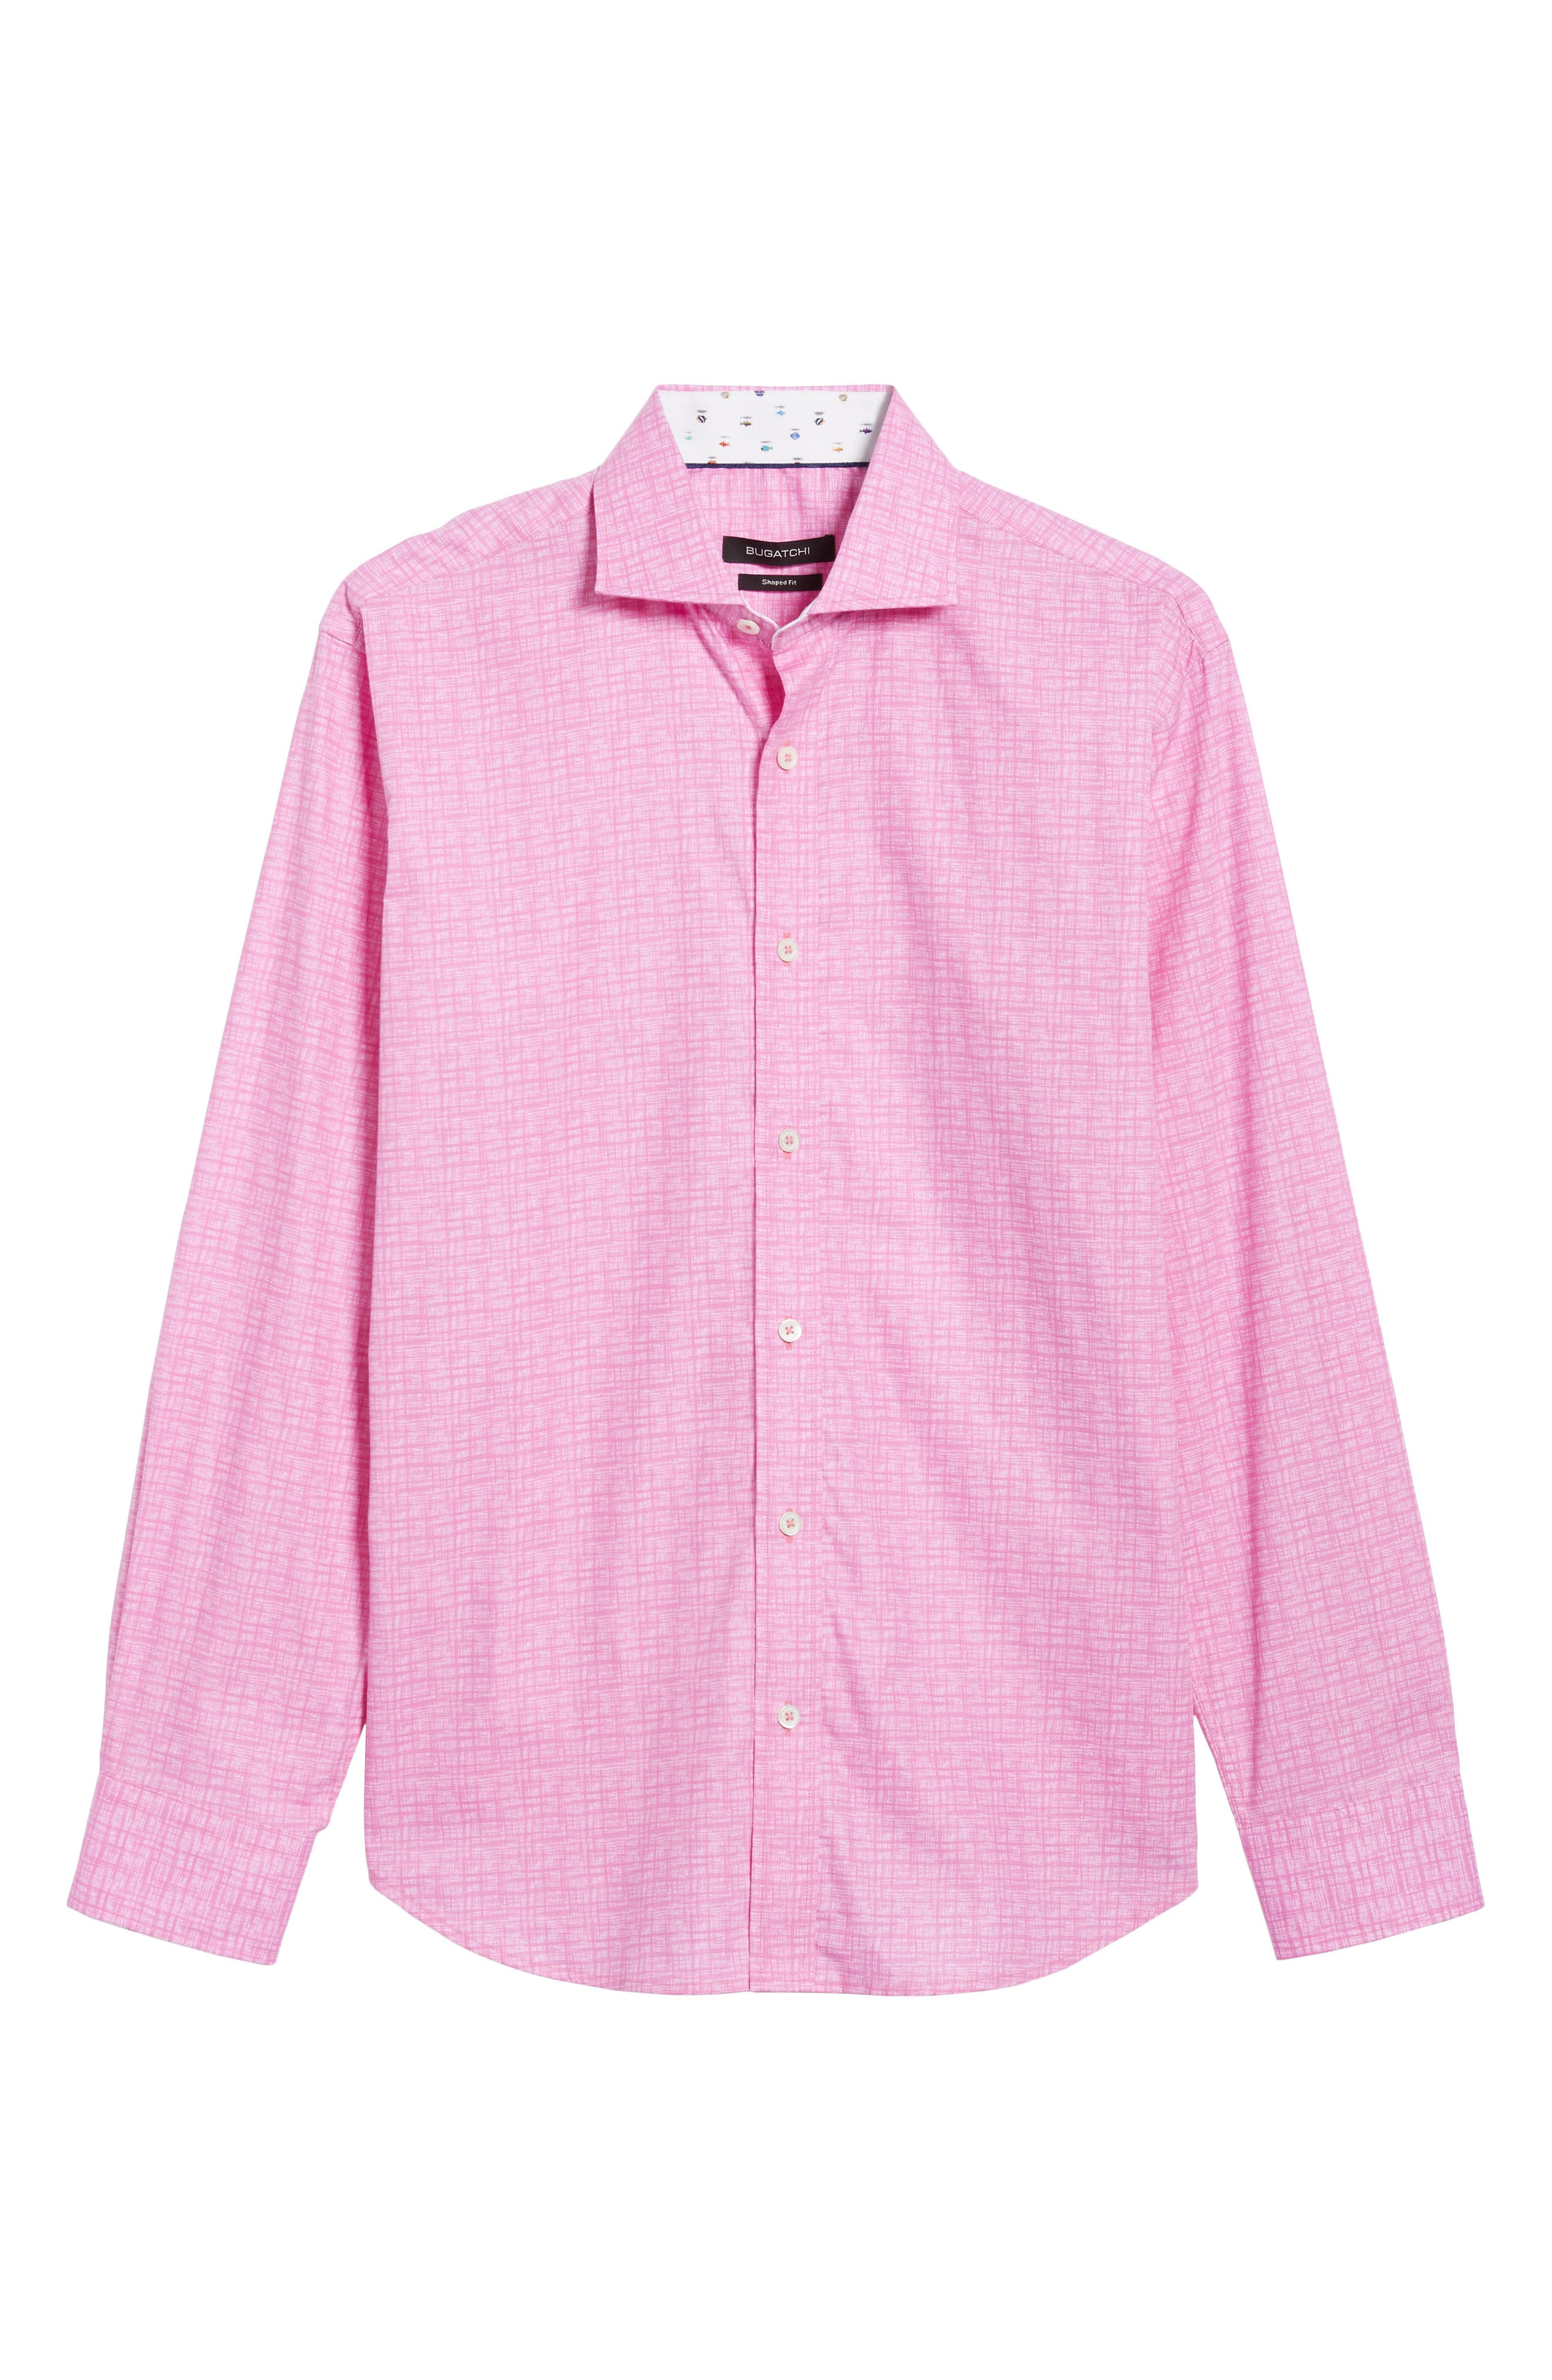 Freehand Shaped Fit Sport Shirt,                             Alternate thumbnail 6, color,                             Pink